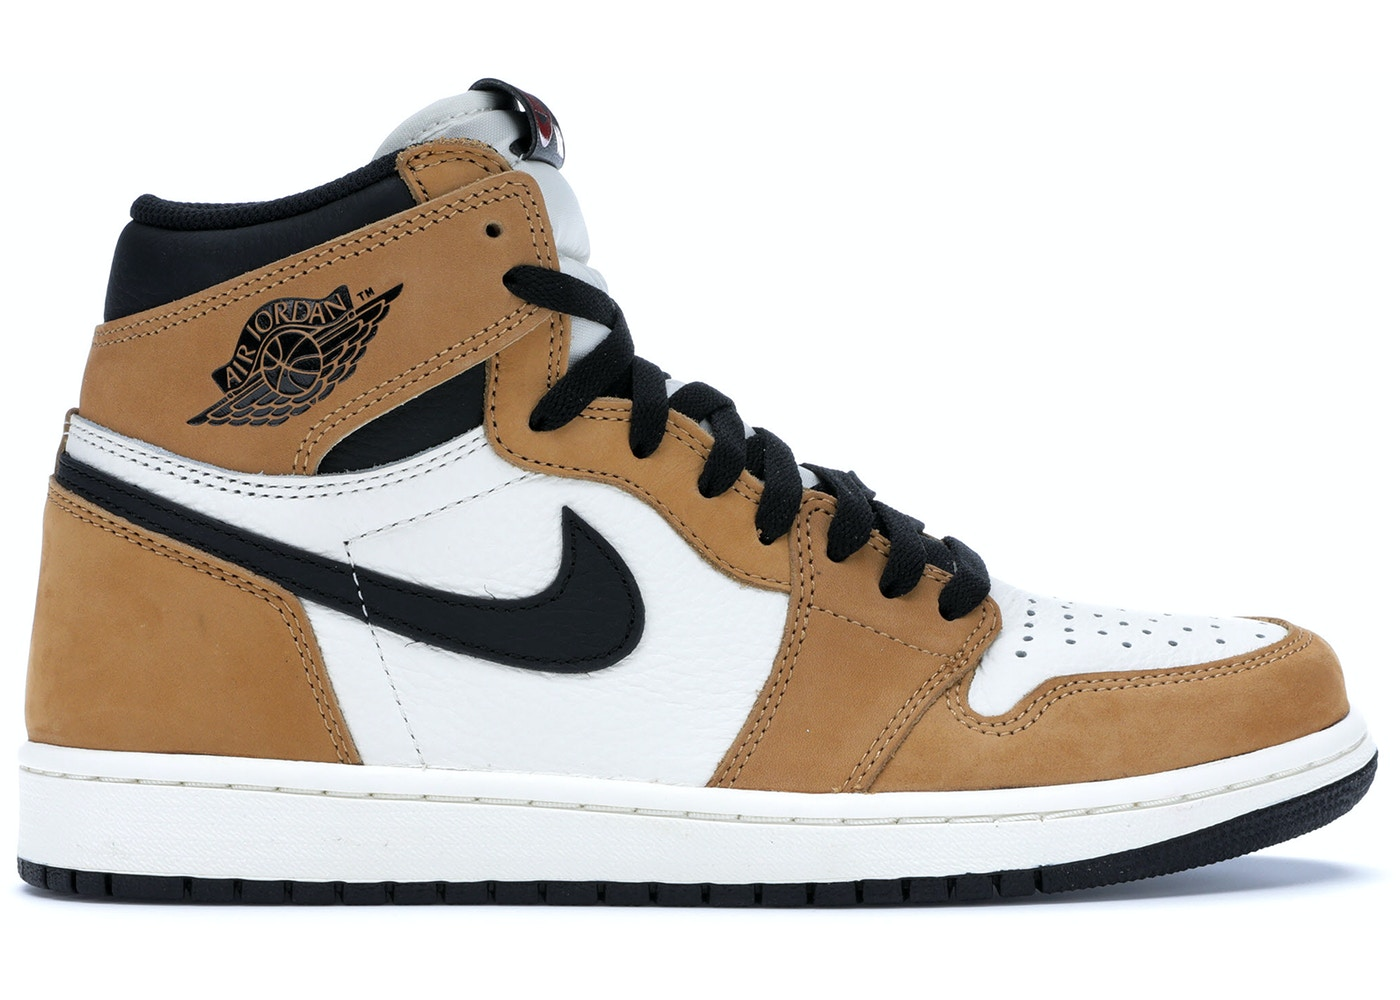 a7e05daa75d Jordan 1 Retro High Rookie of the Year - 555088-700